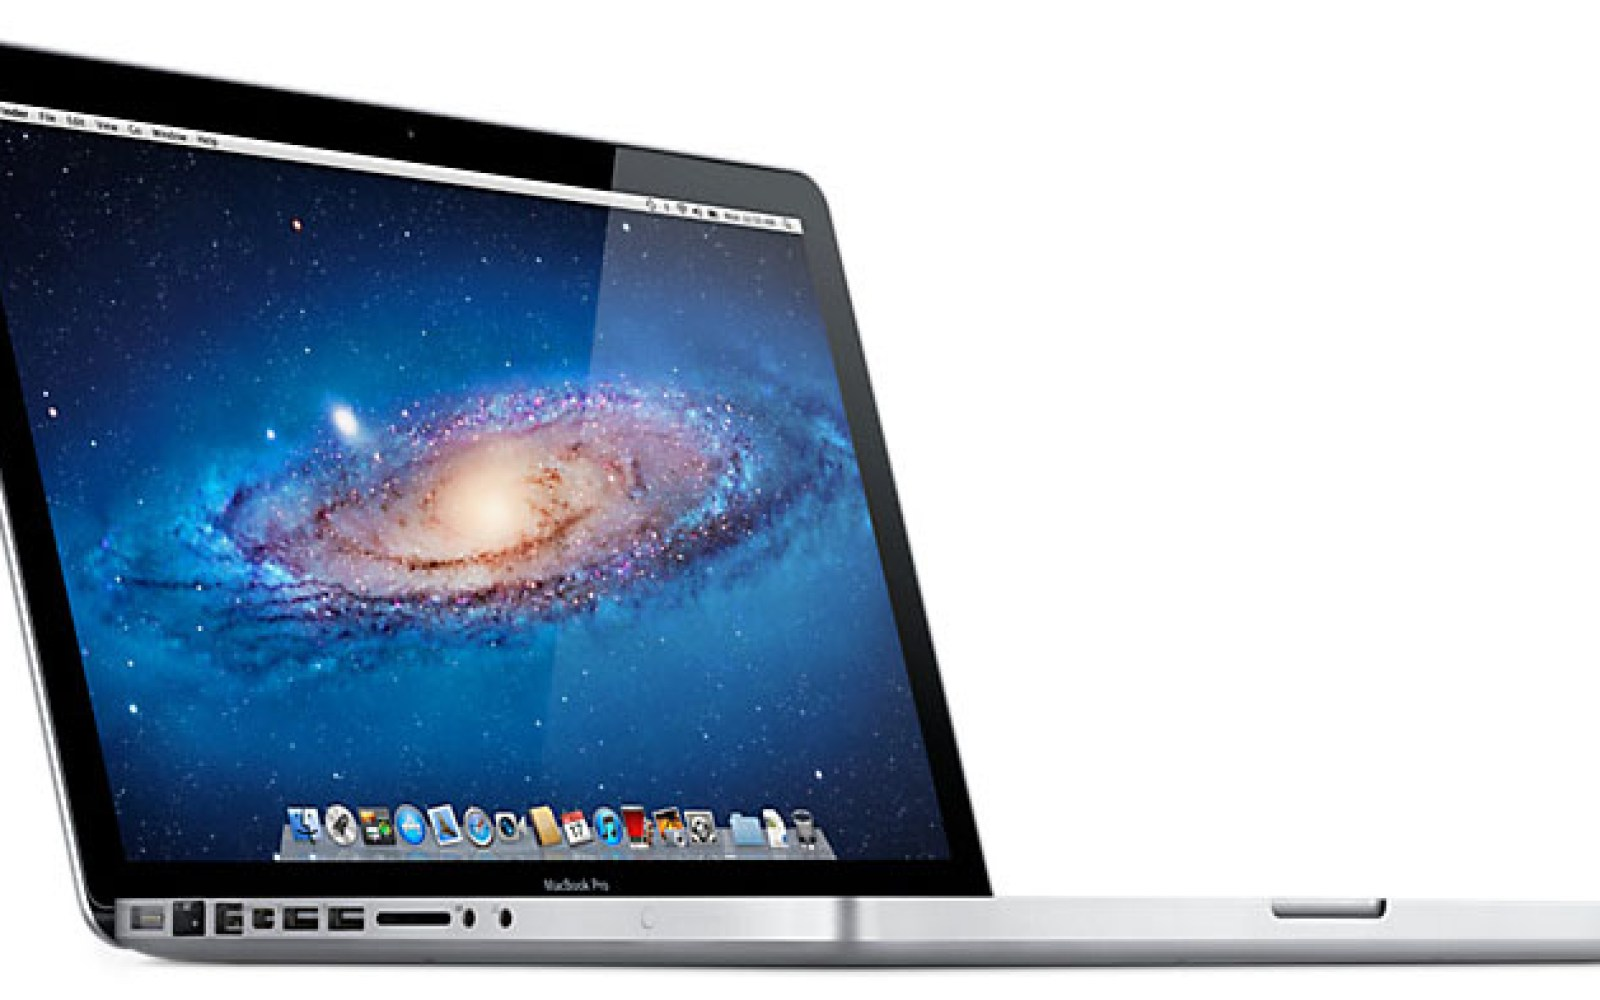 RIP Mac optical drives? Rumor suggests Apple to drop last non-Retina MacBook Pro this year